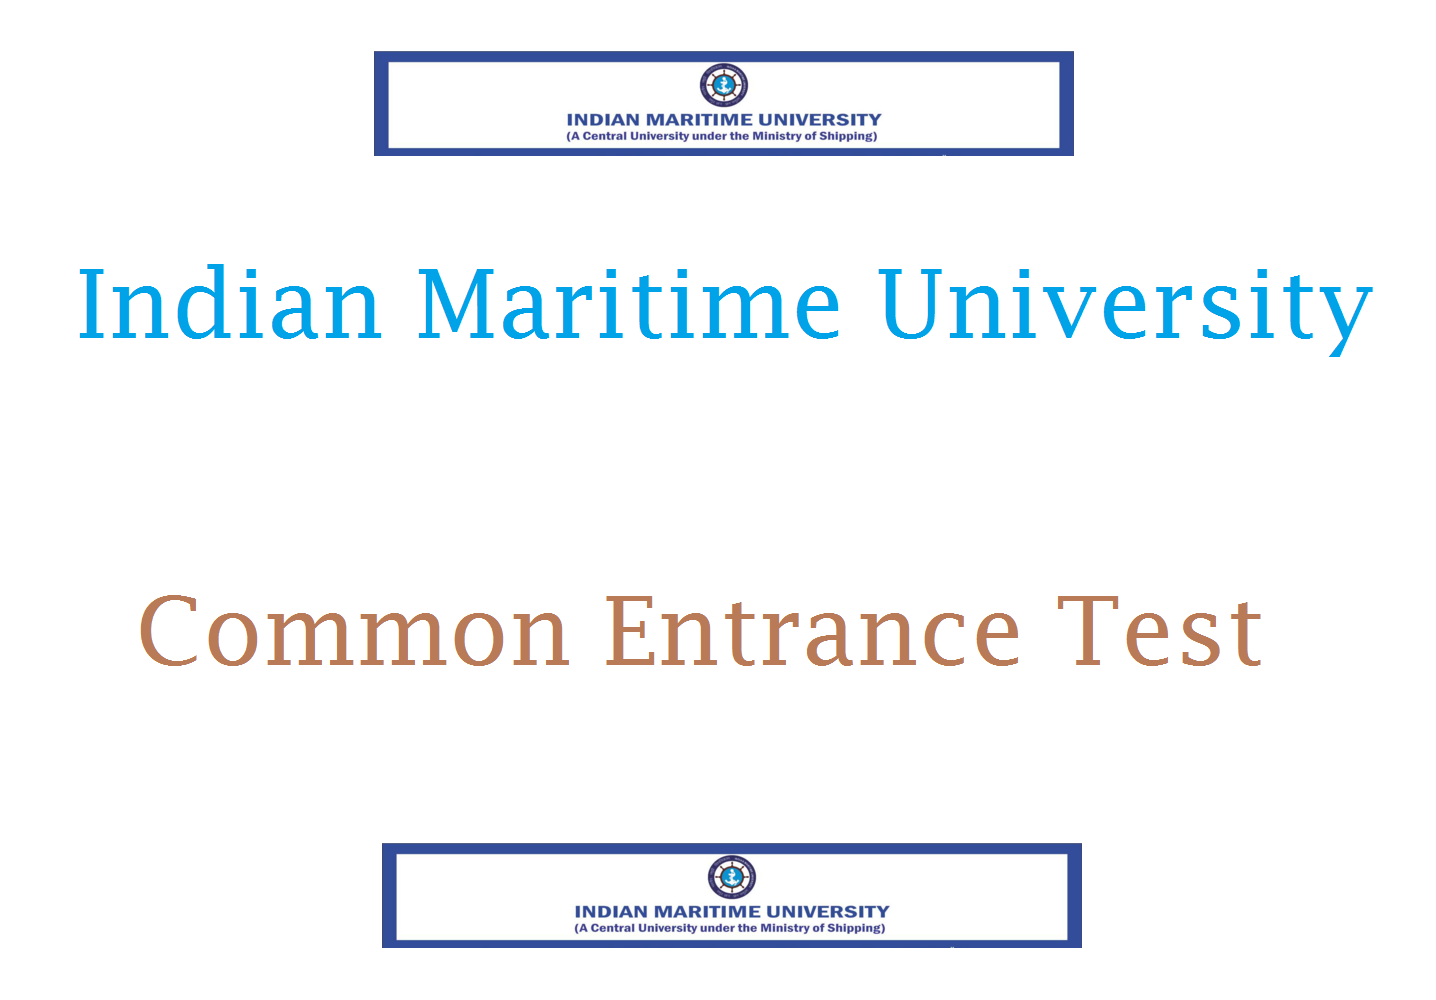 imu cet 2019 application form